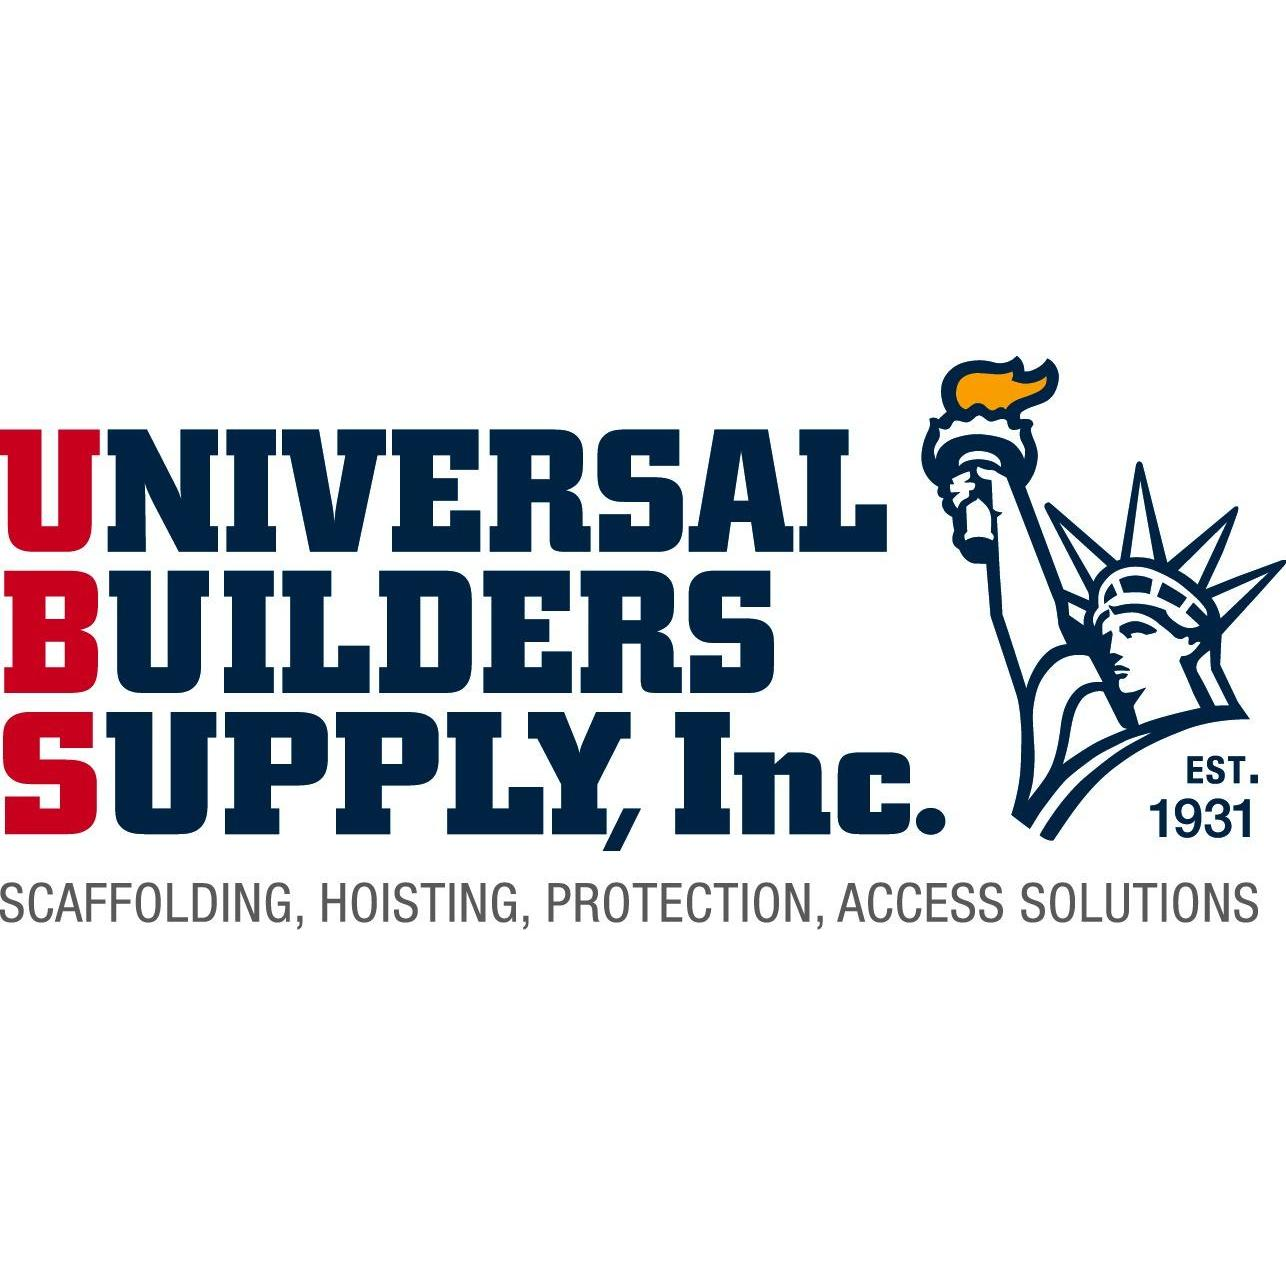 Universal Builders Supply Inc.